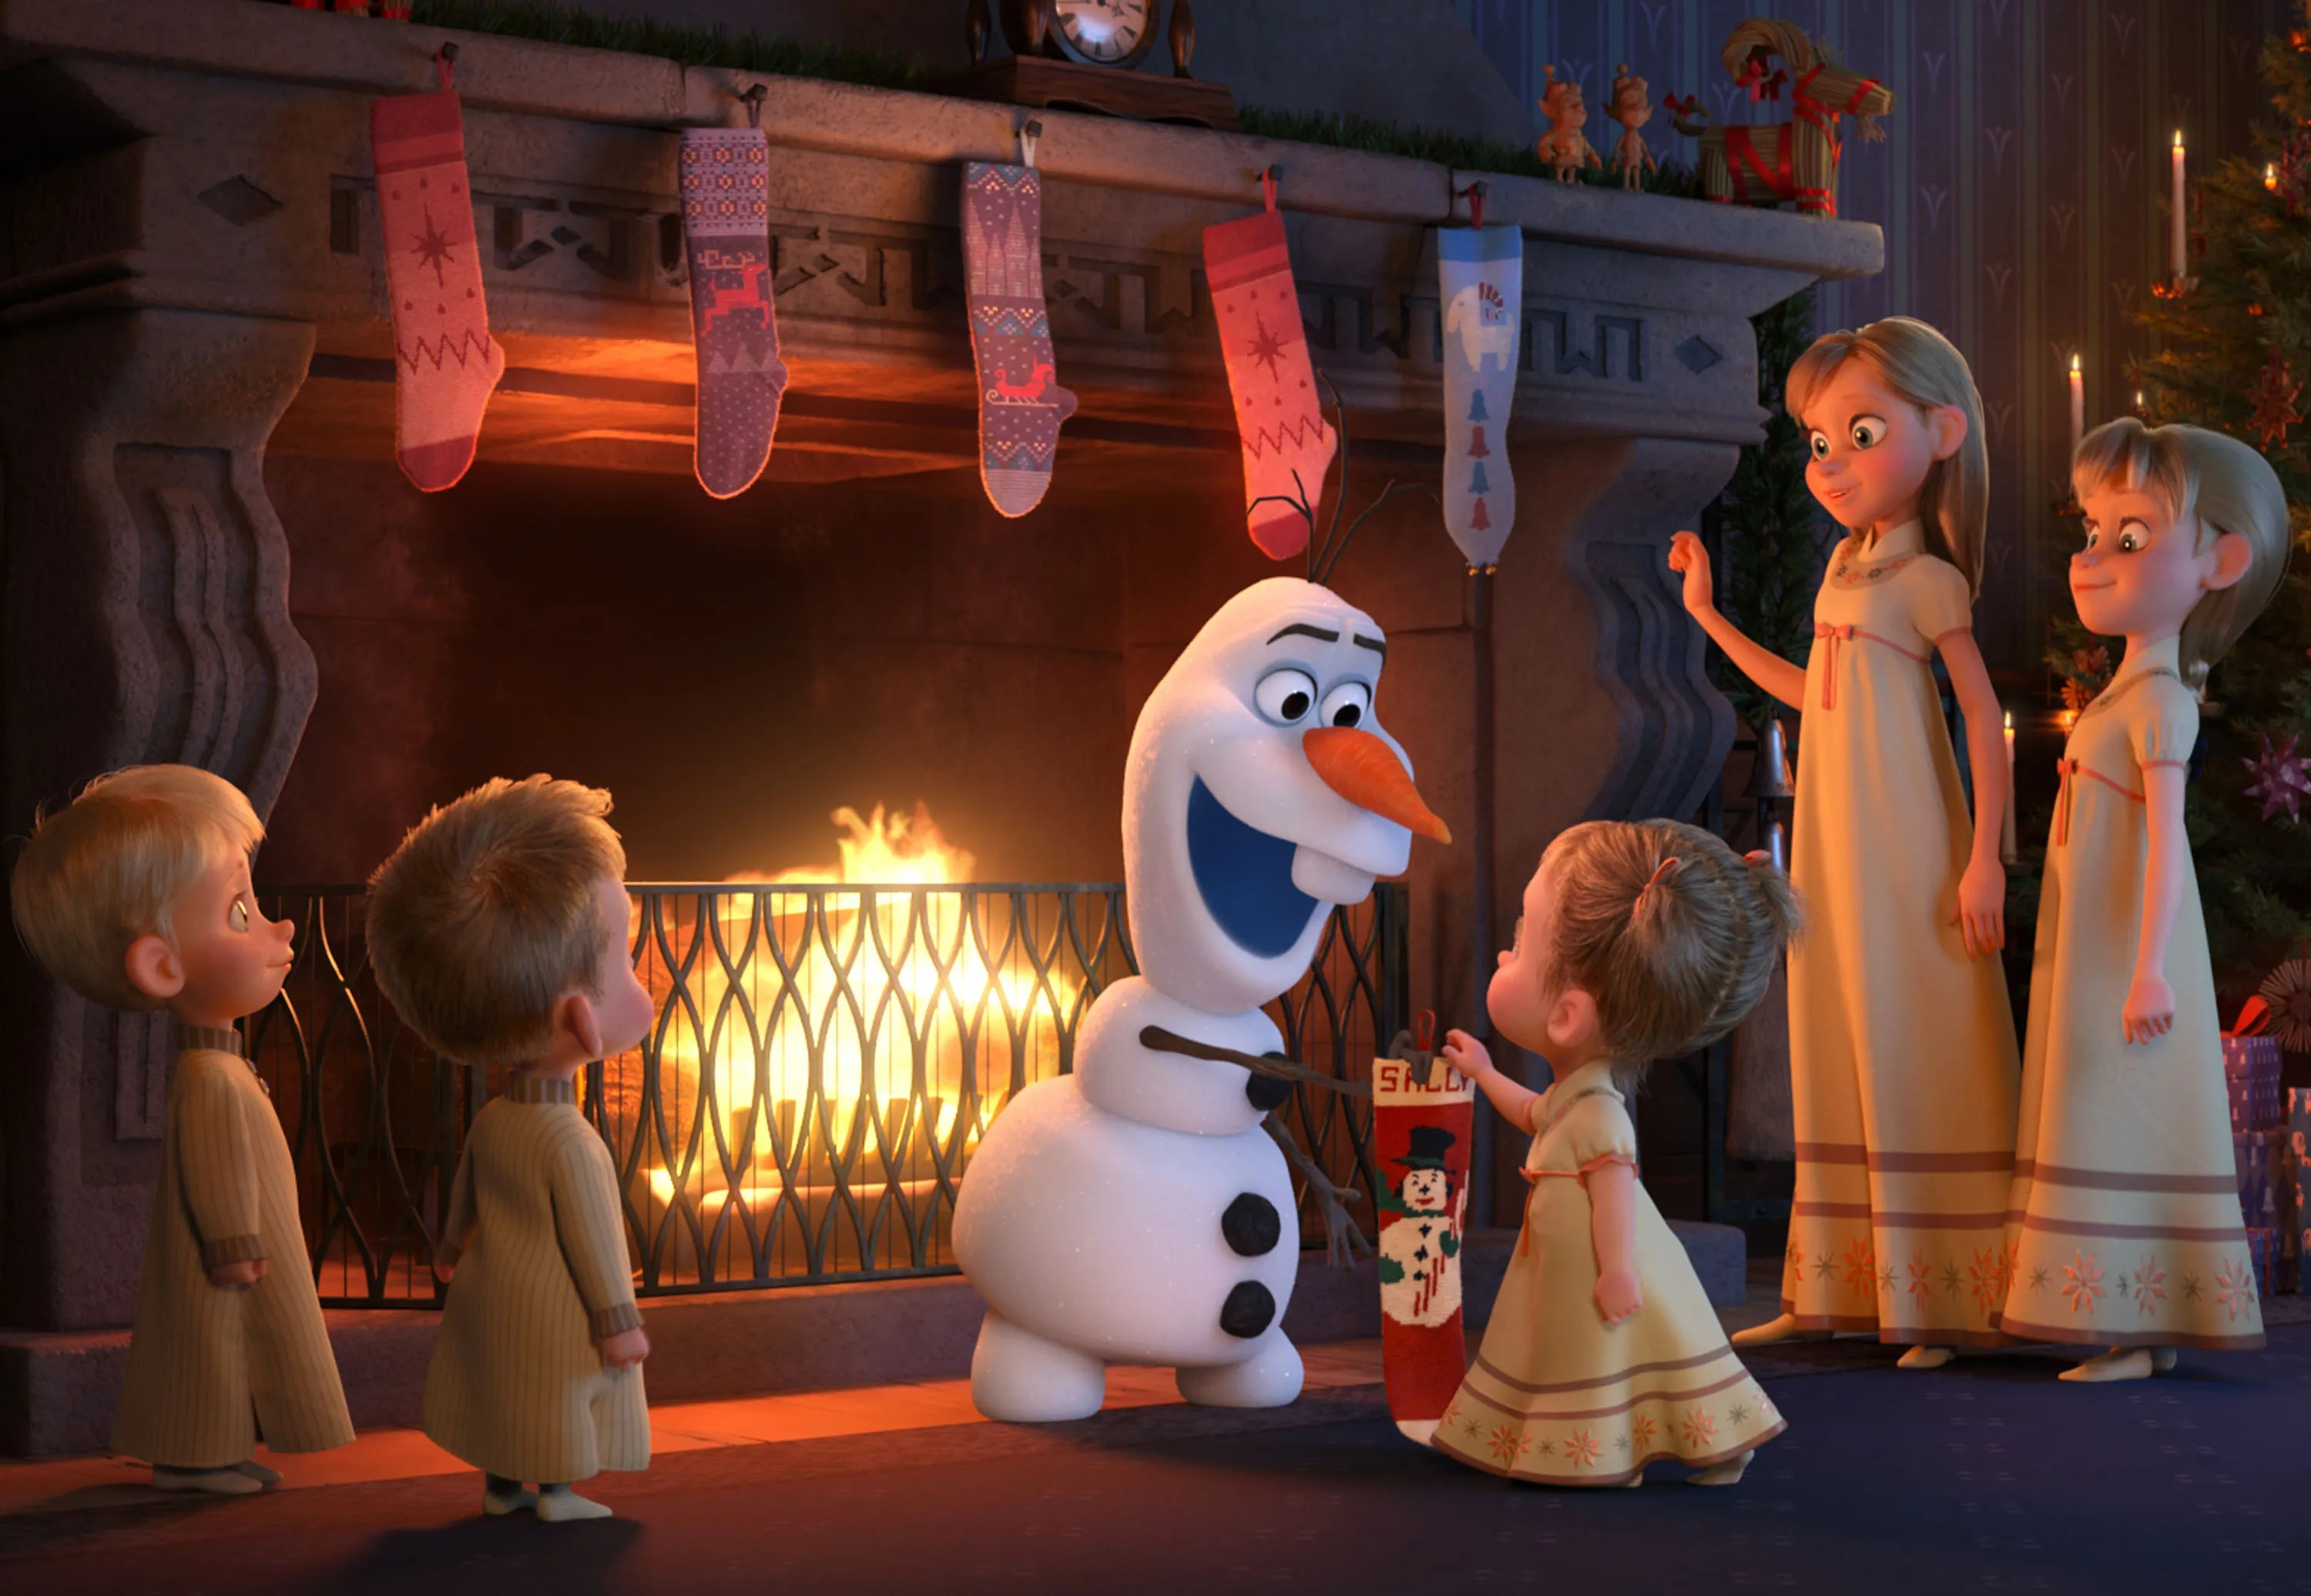 Cute Goat Wallpaper Olaf S Frozen Adventure Directors On Crafting The Short